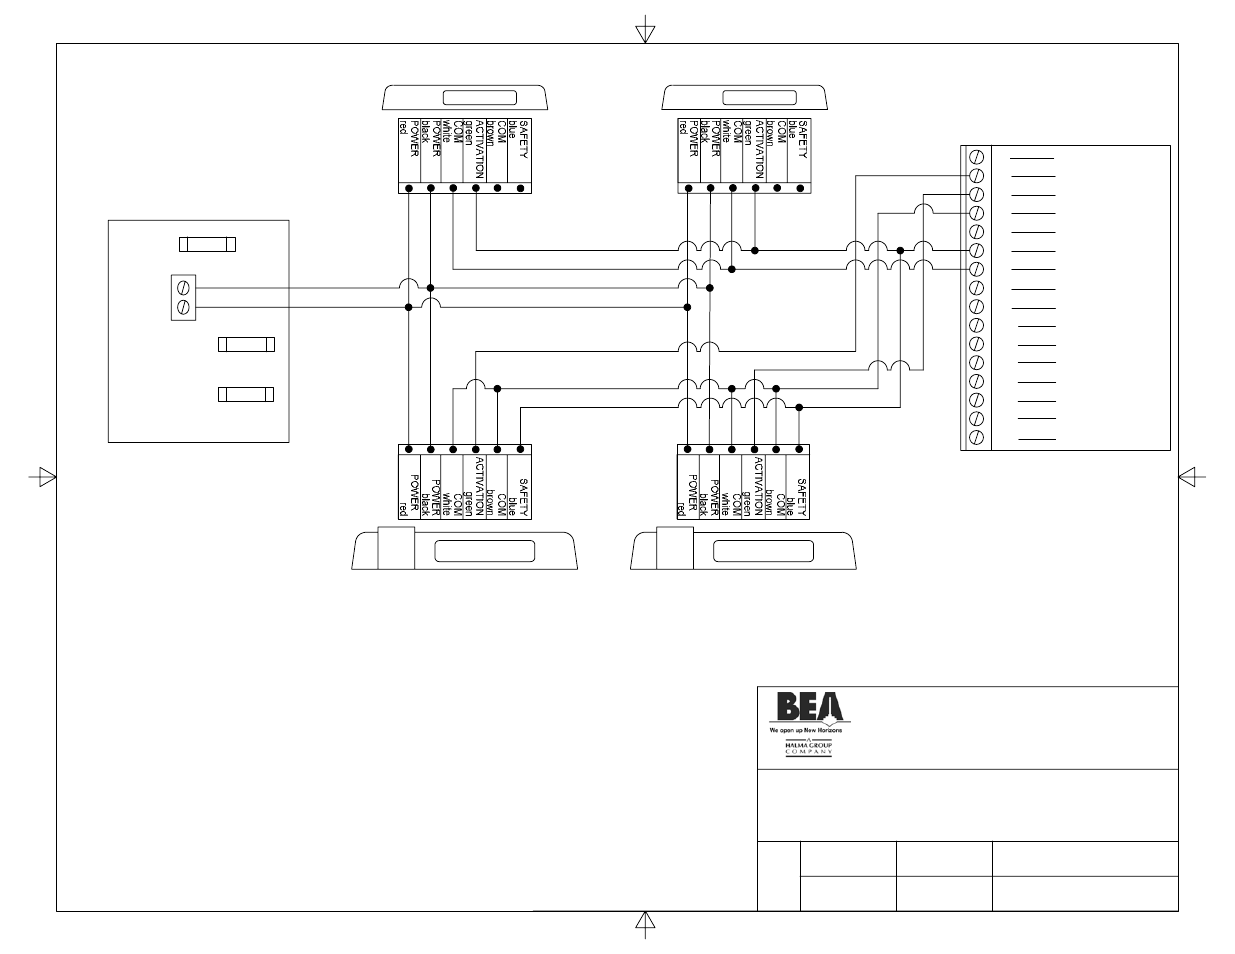 emg wiring diagram pa2 2005 ford f150 remote start afterburner harness ~ odicis